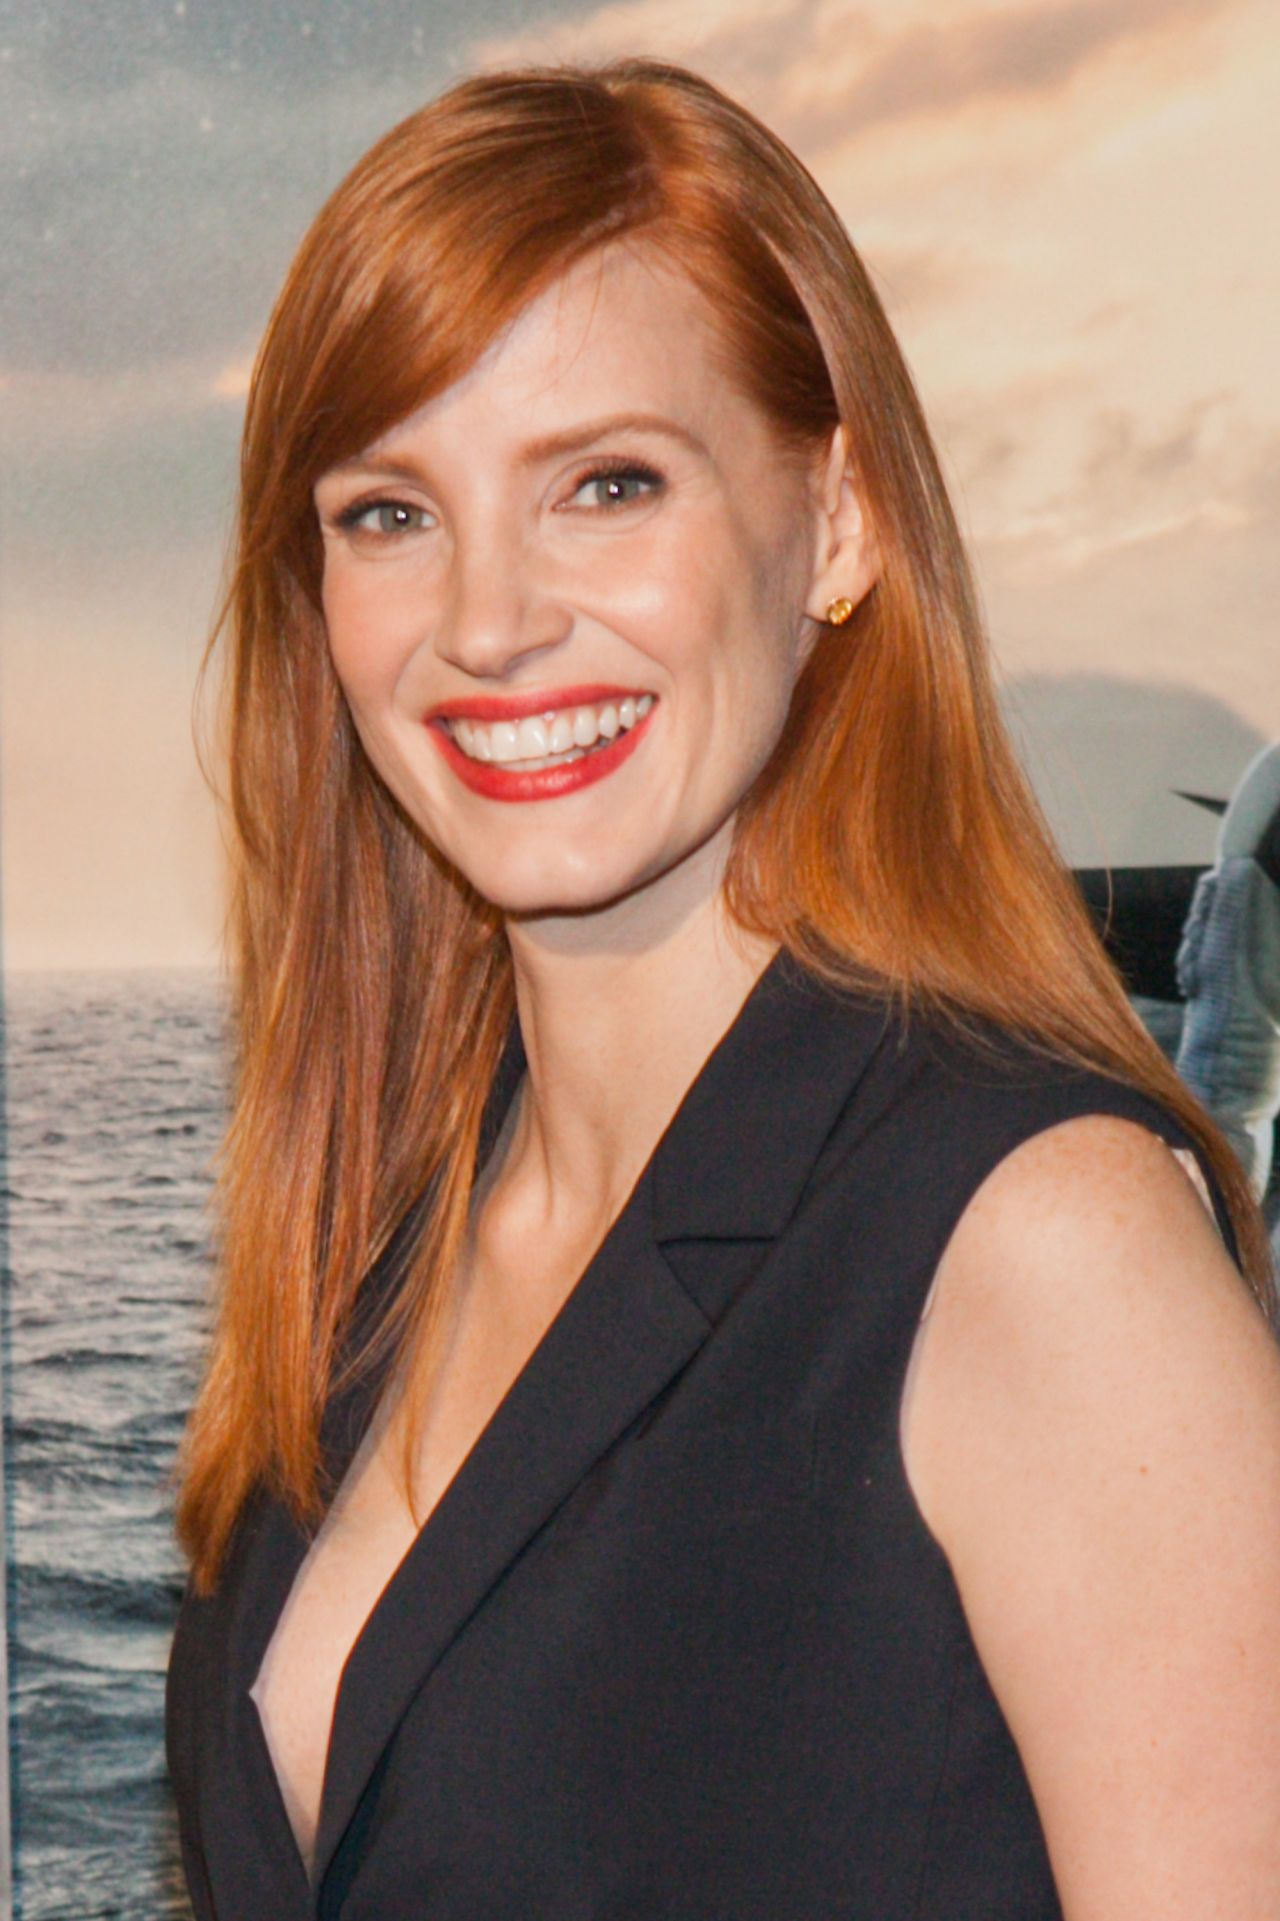 Jessica Chastain Interstellar Premiere In Washington Dc